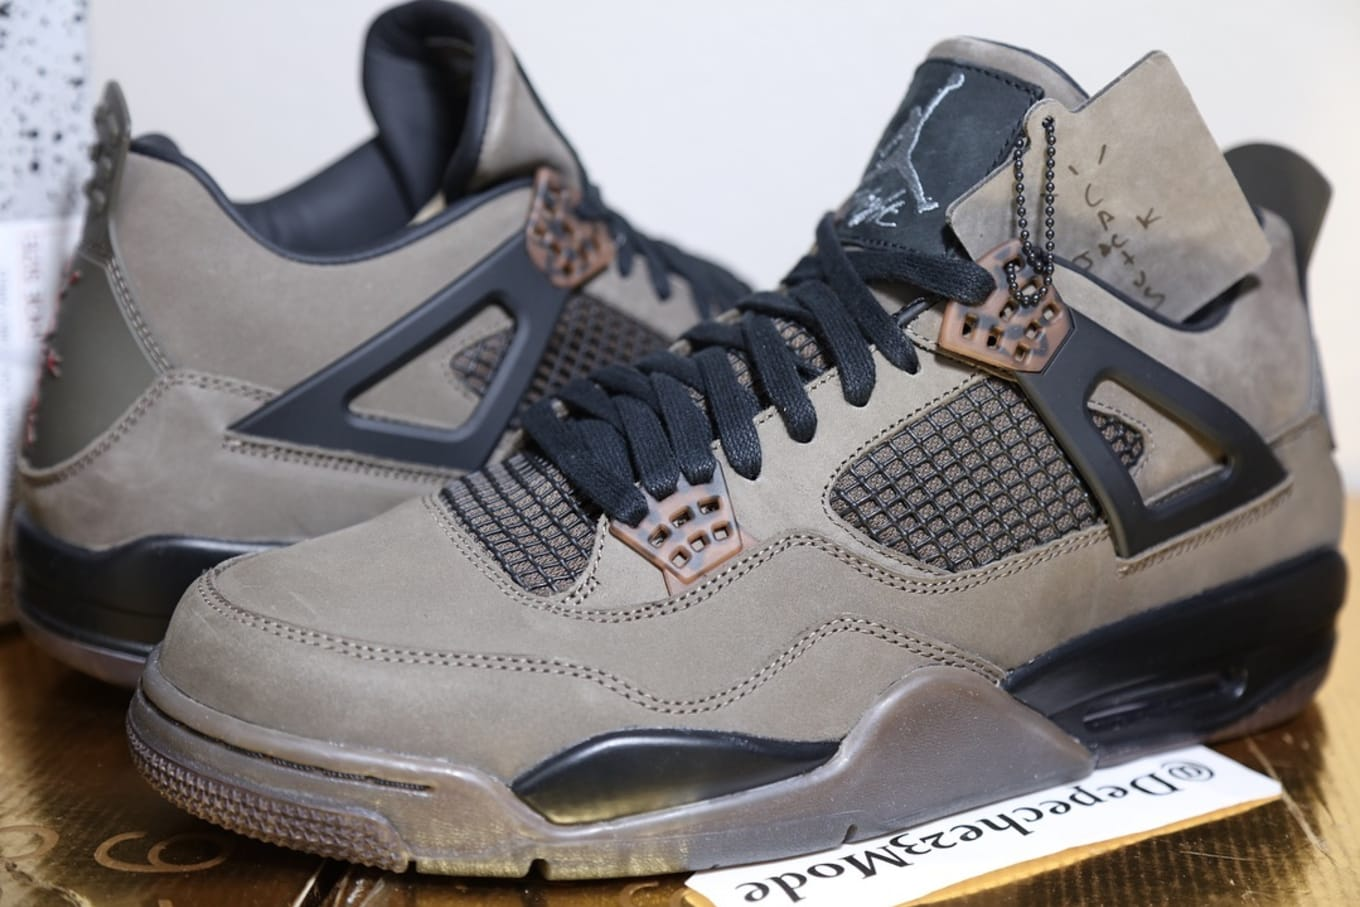 finest selection 540b3 9f5e3 Up Close Look At Travis Scott's 'Olive' Air Jordan 4 Collab ...